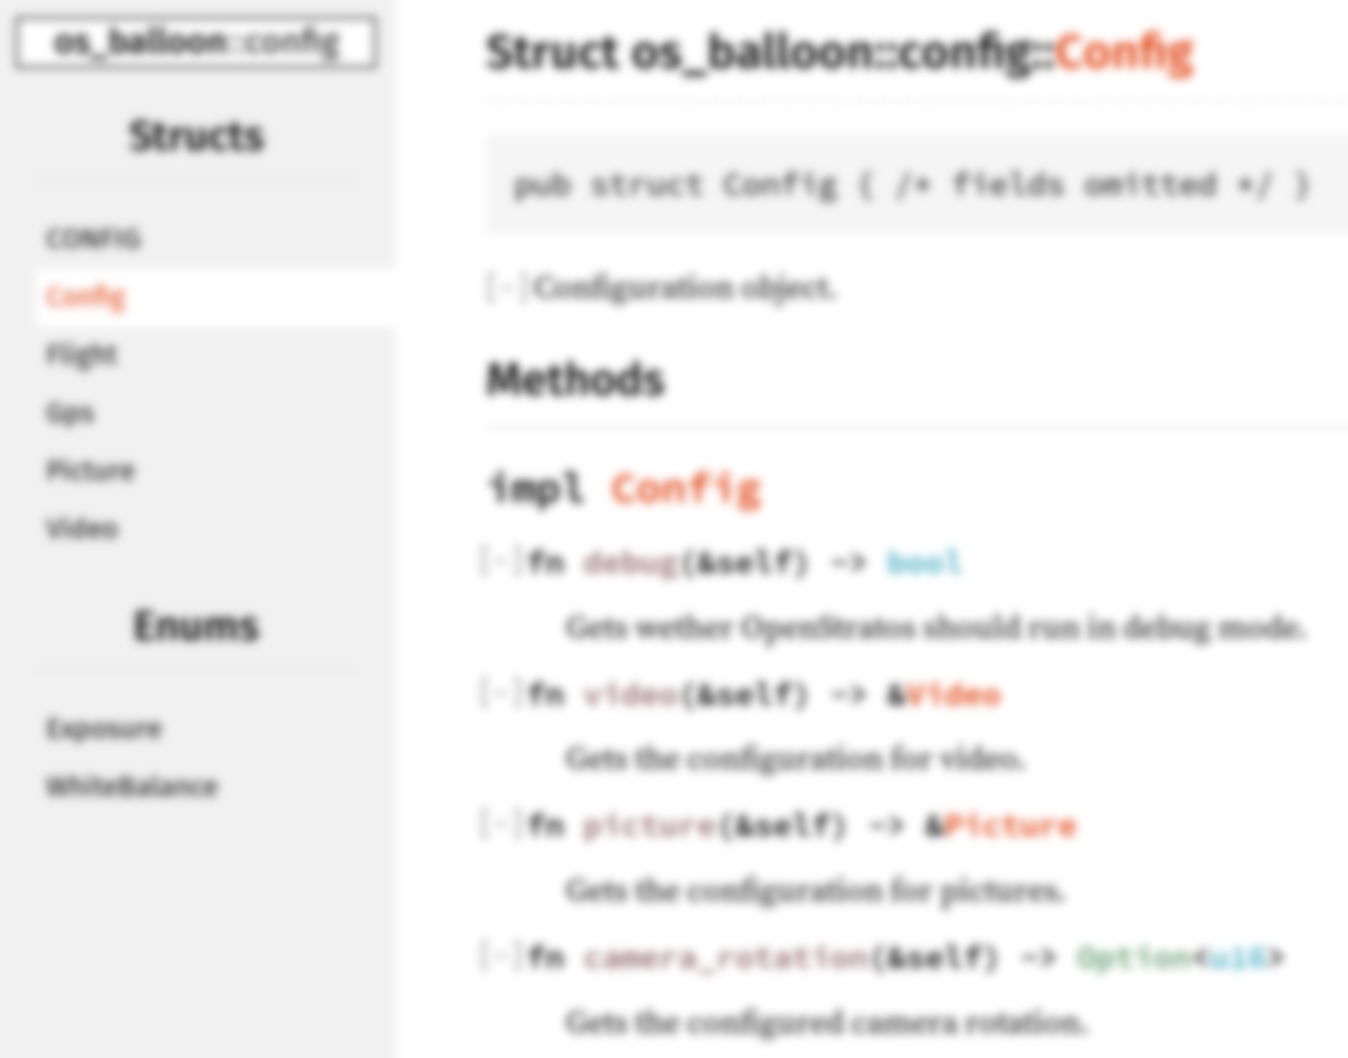 Continuous integration and code coverage report for a Rust